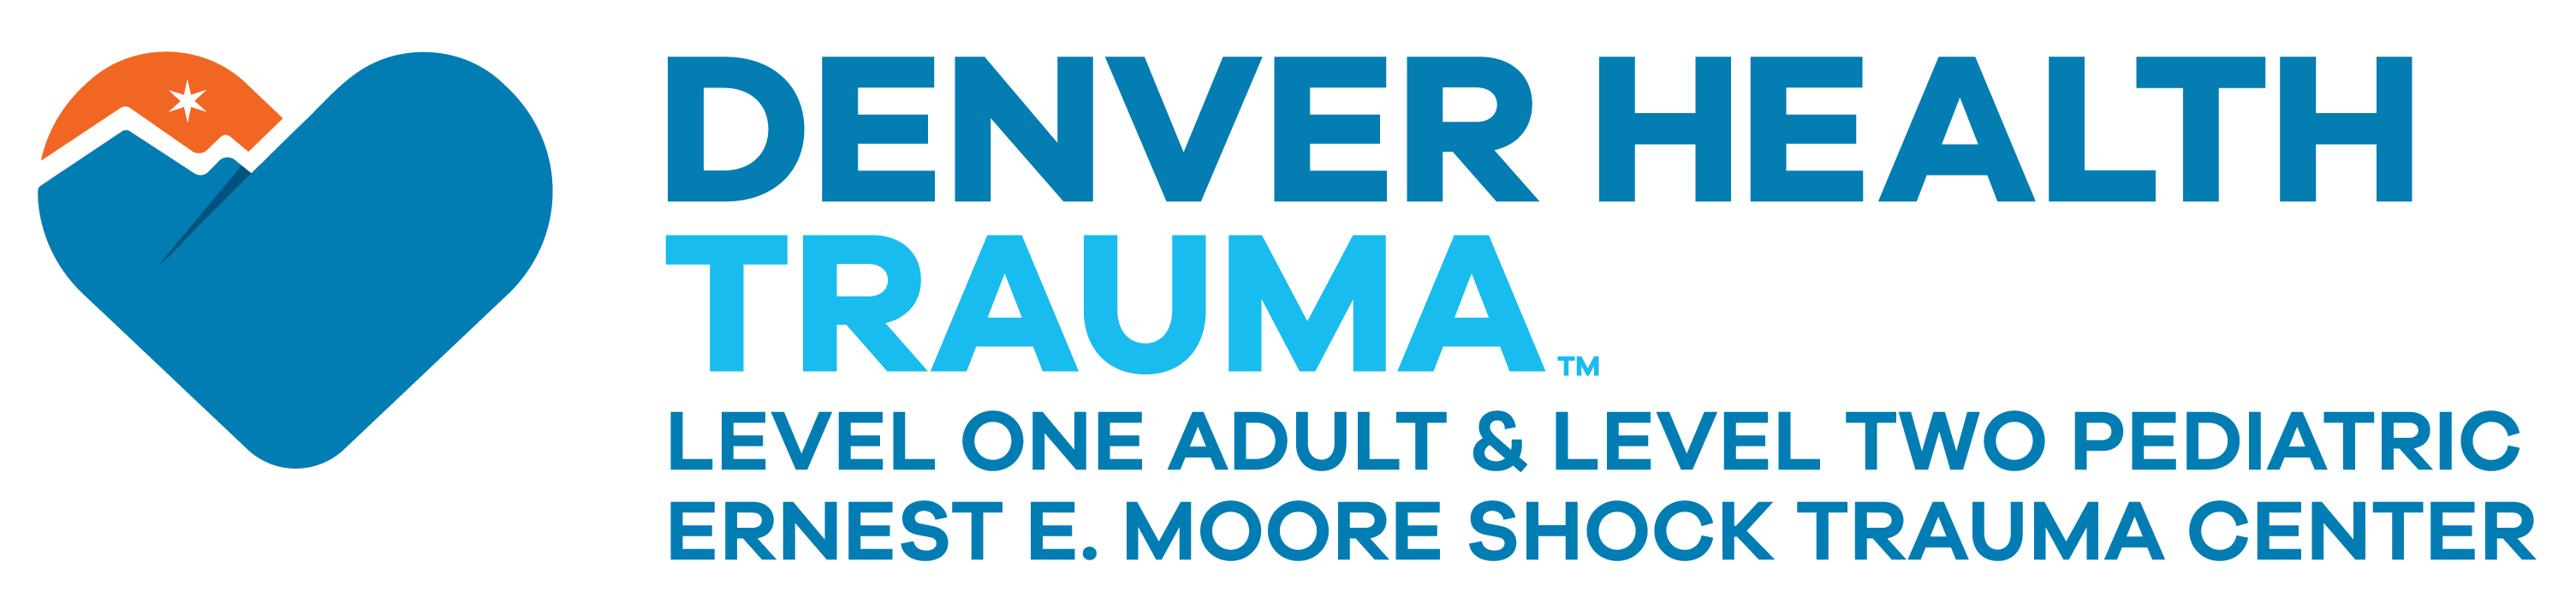 January 2021 Trauma Lecture Series featuring Dr. Claudia Kunrath